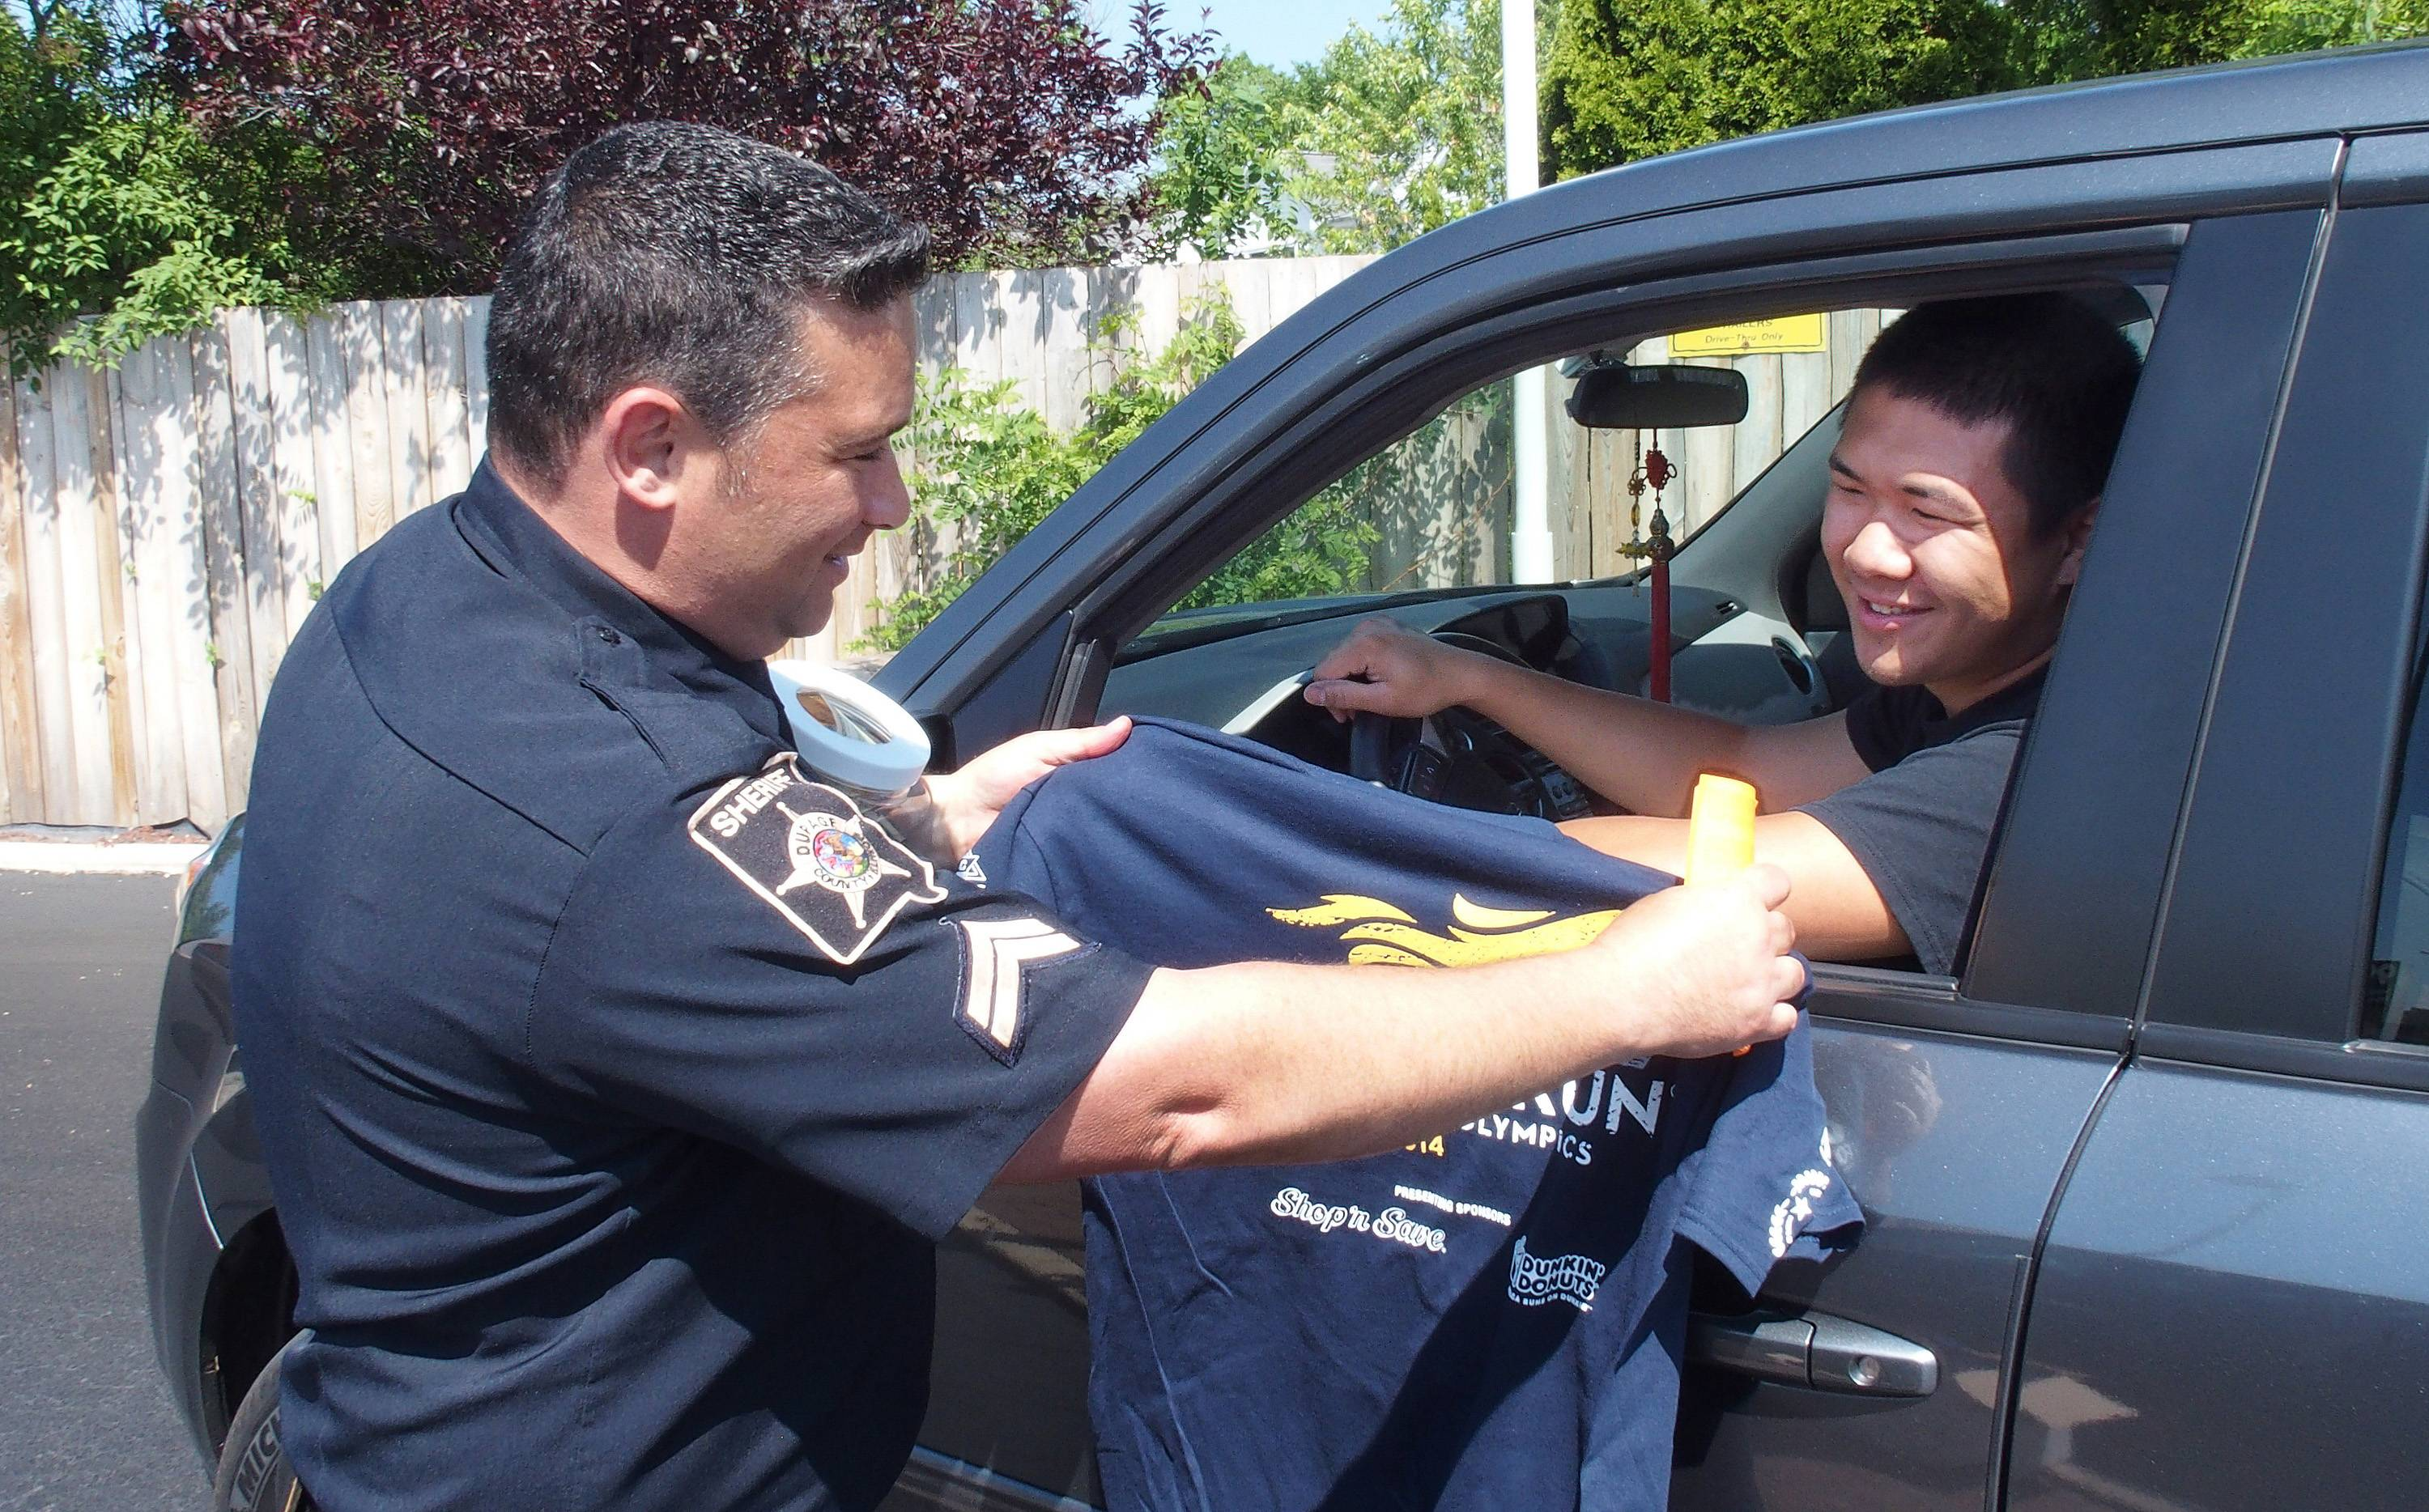 At the Dunkin' Donuts at 811 E. Ogden Ave, in Naperville Friday, DuPage County Sheriff's Deputy Corporal Michael Urso, left, gives a Torch Run T-shirt to Tony Liu, right, who made a contribution to the fund.